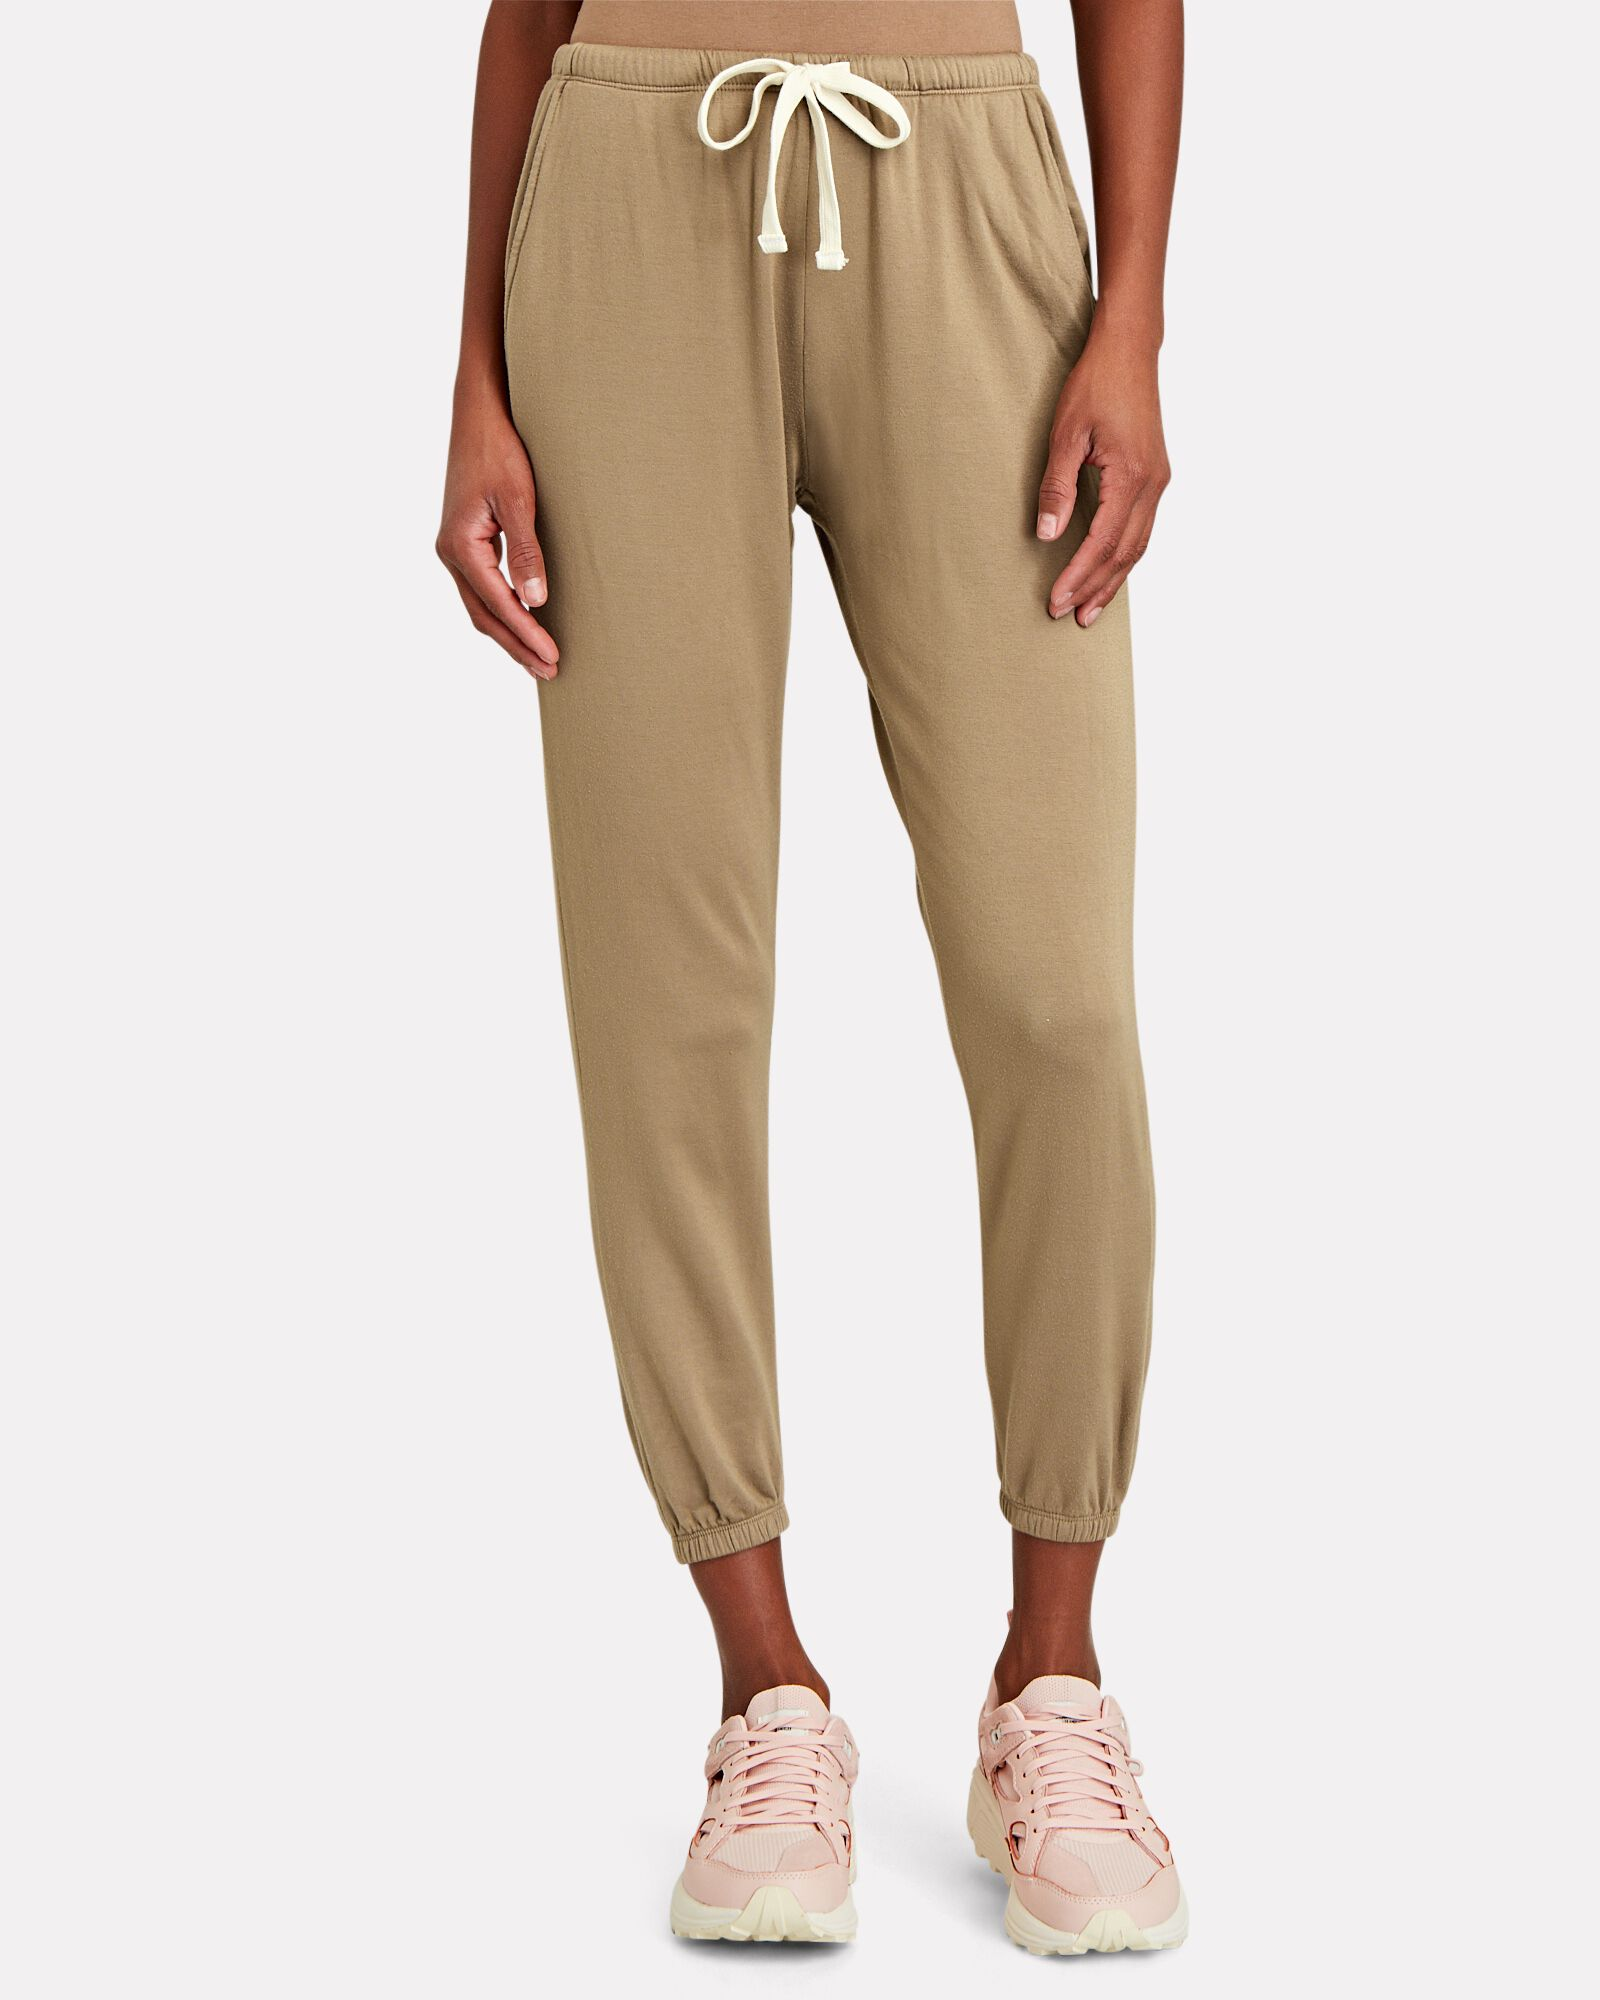 Rialto Elastic Cuff Sweatpants, BROWN, hi-res